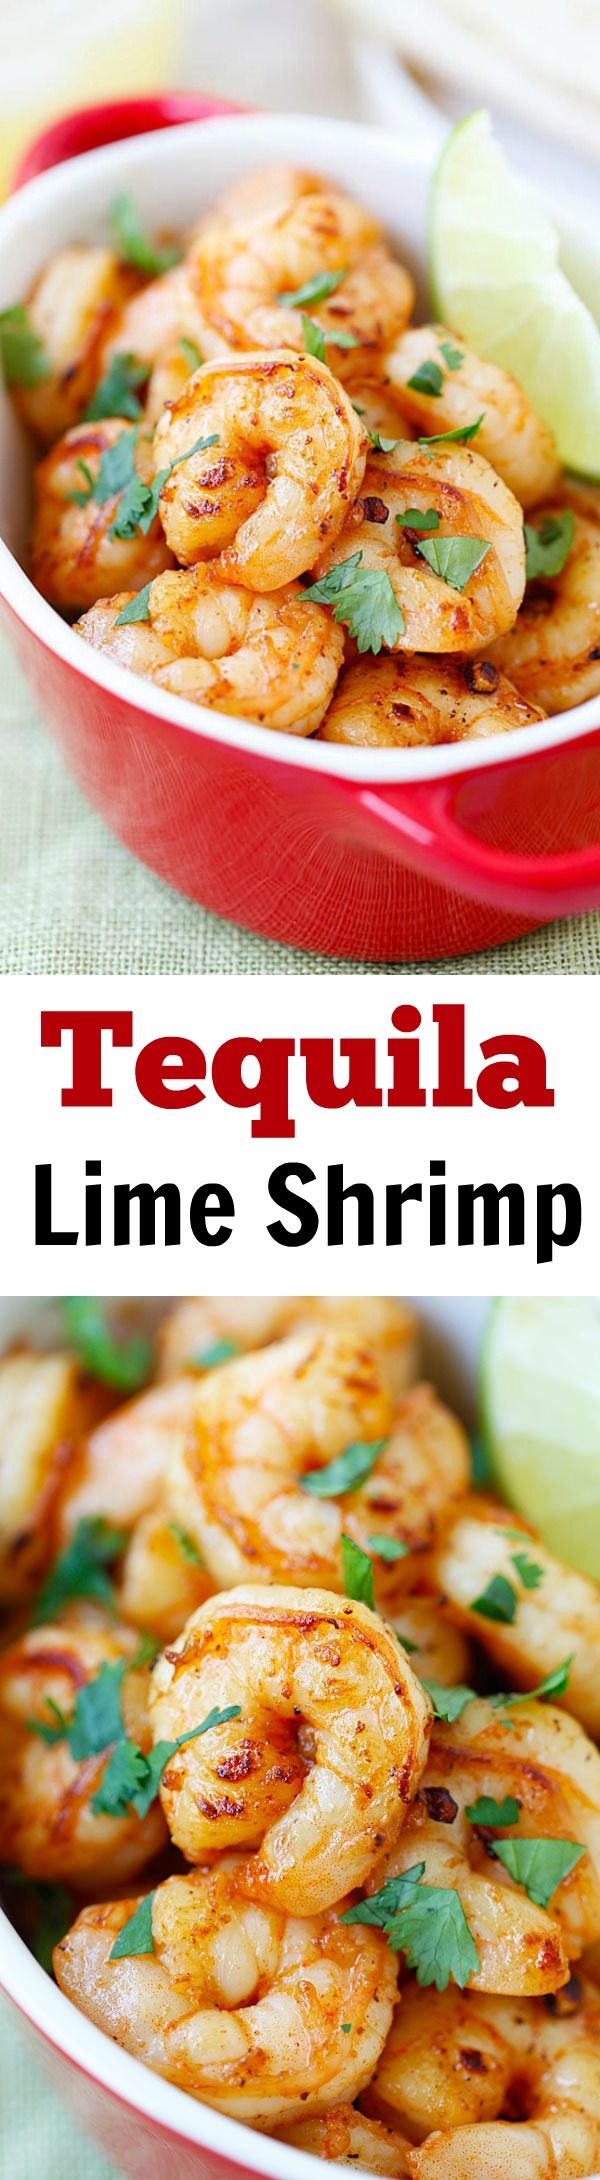 Tequila Lime Shrimp - shrimp with tequila, lime. SO good and takes 15 mins to make! | rasamalaysia.com #cincodemayo